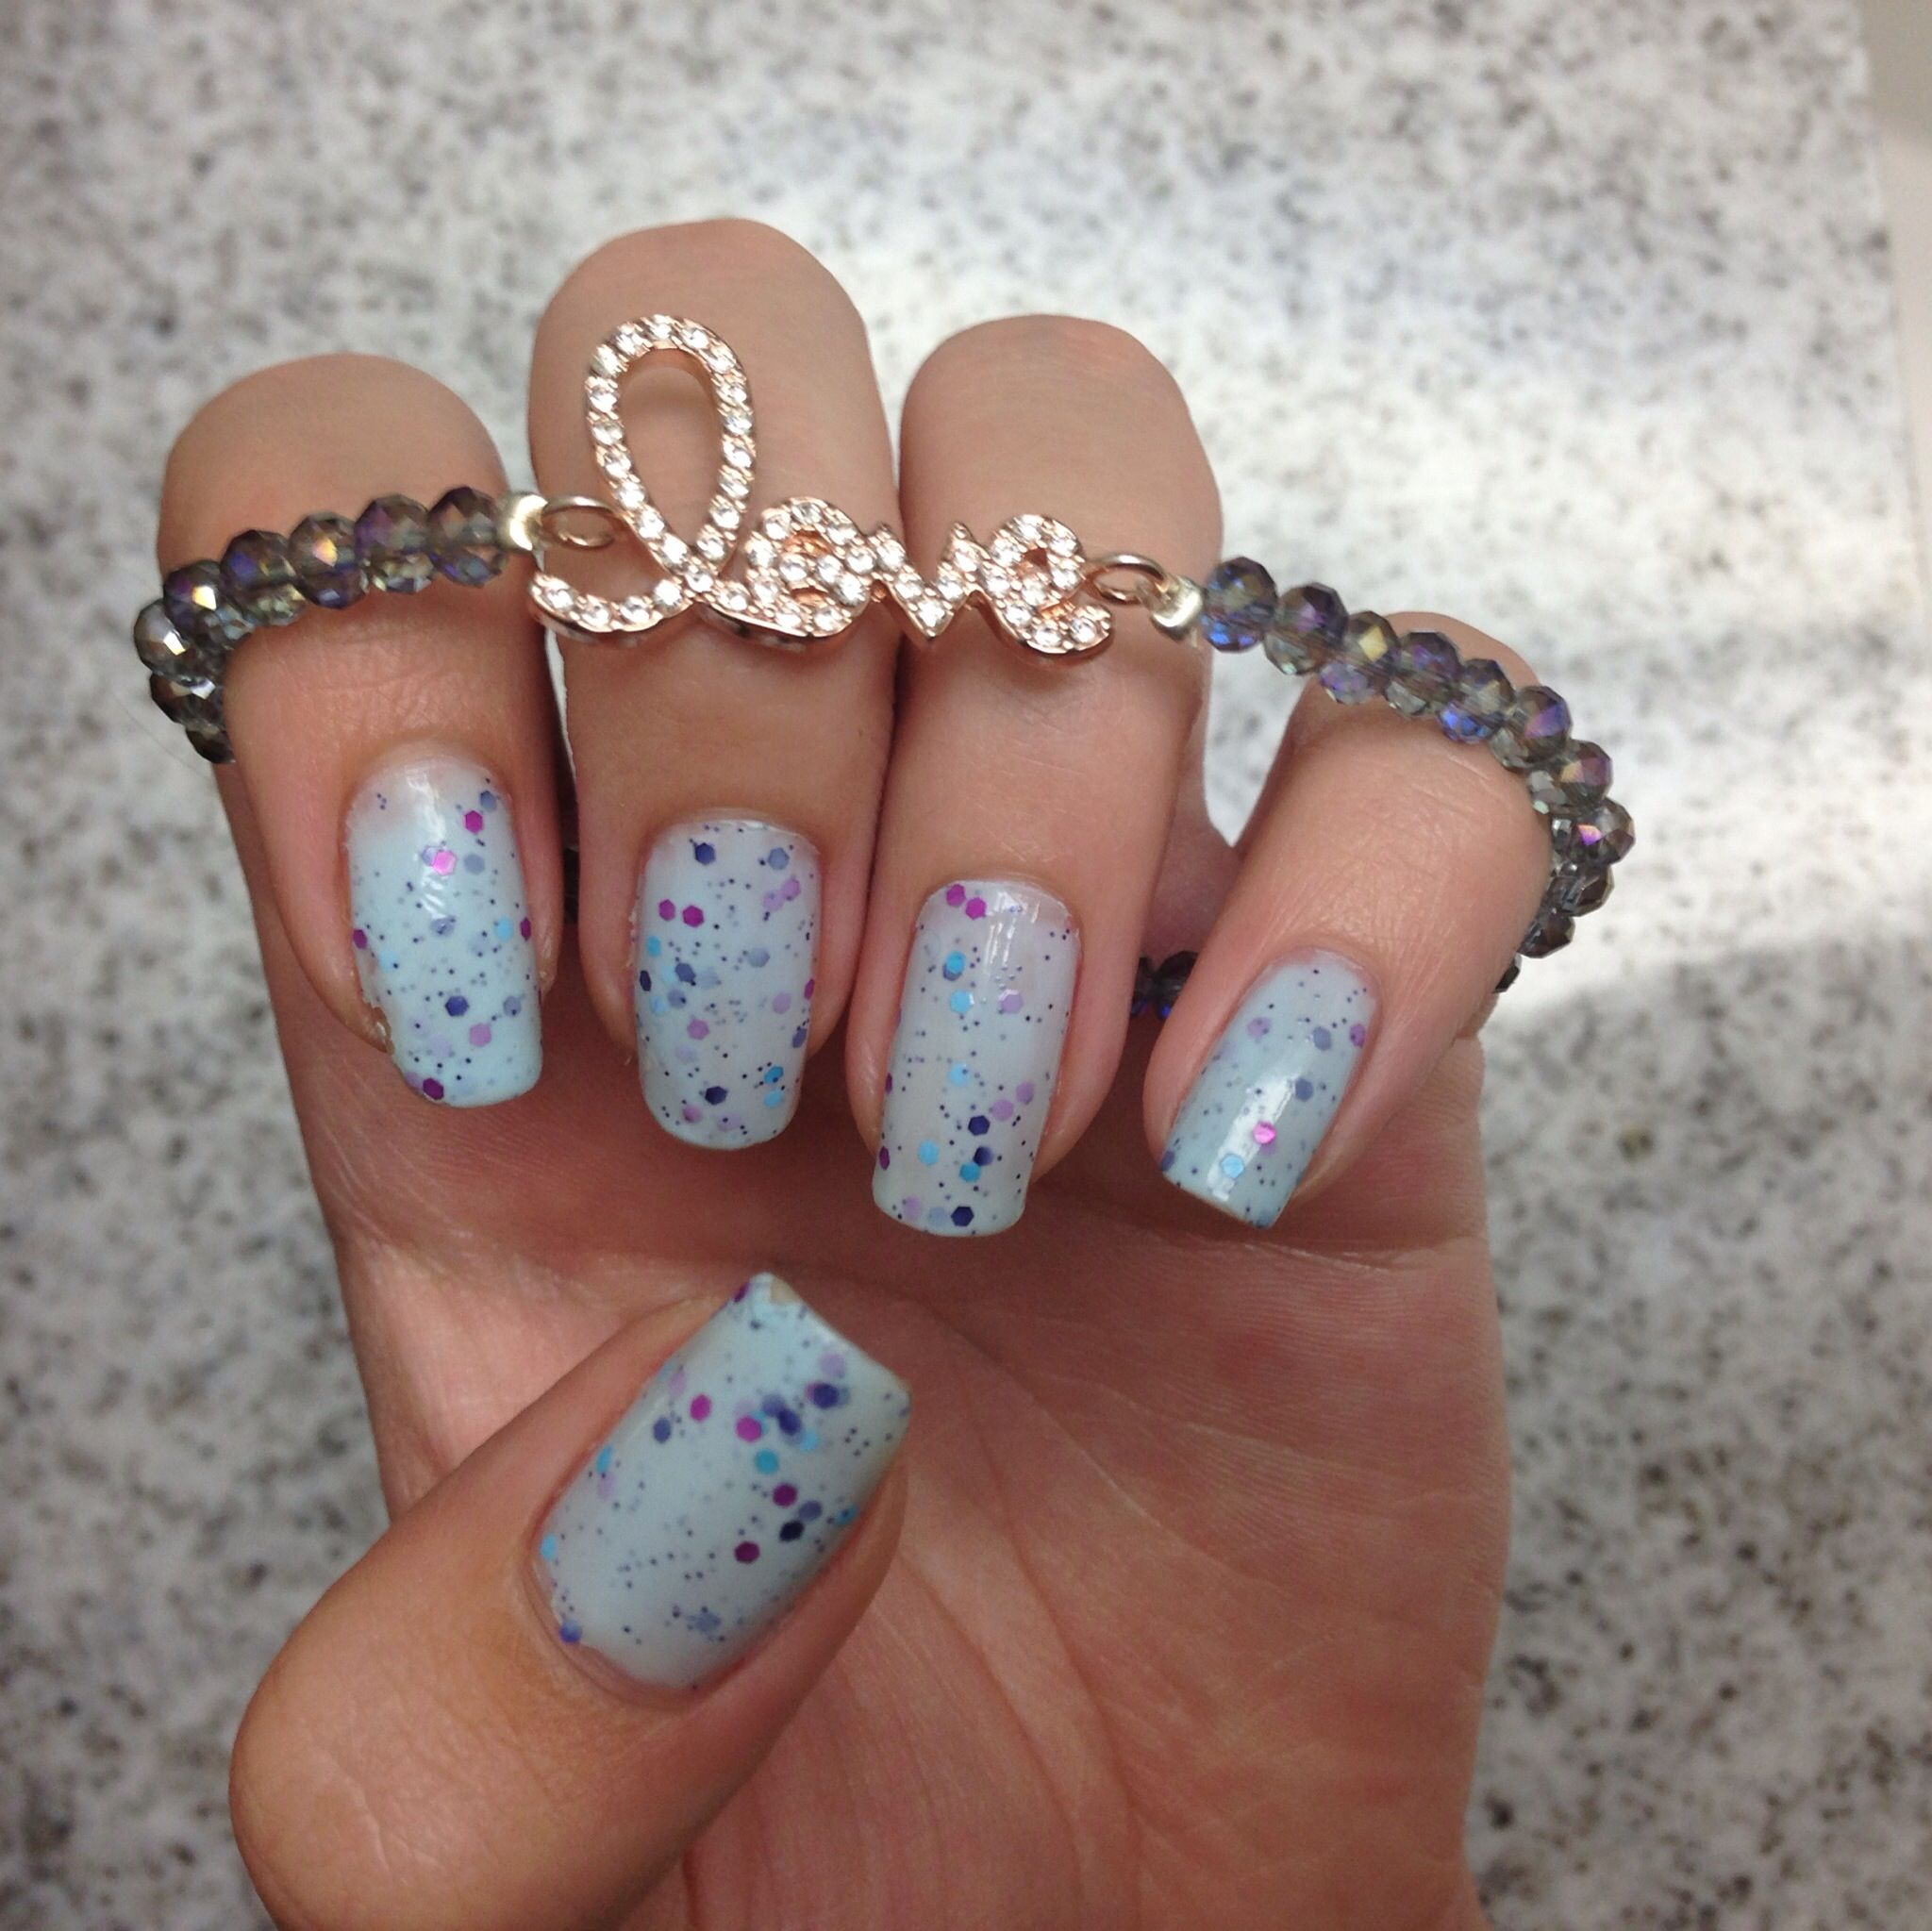 Nails and love